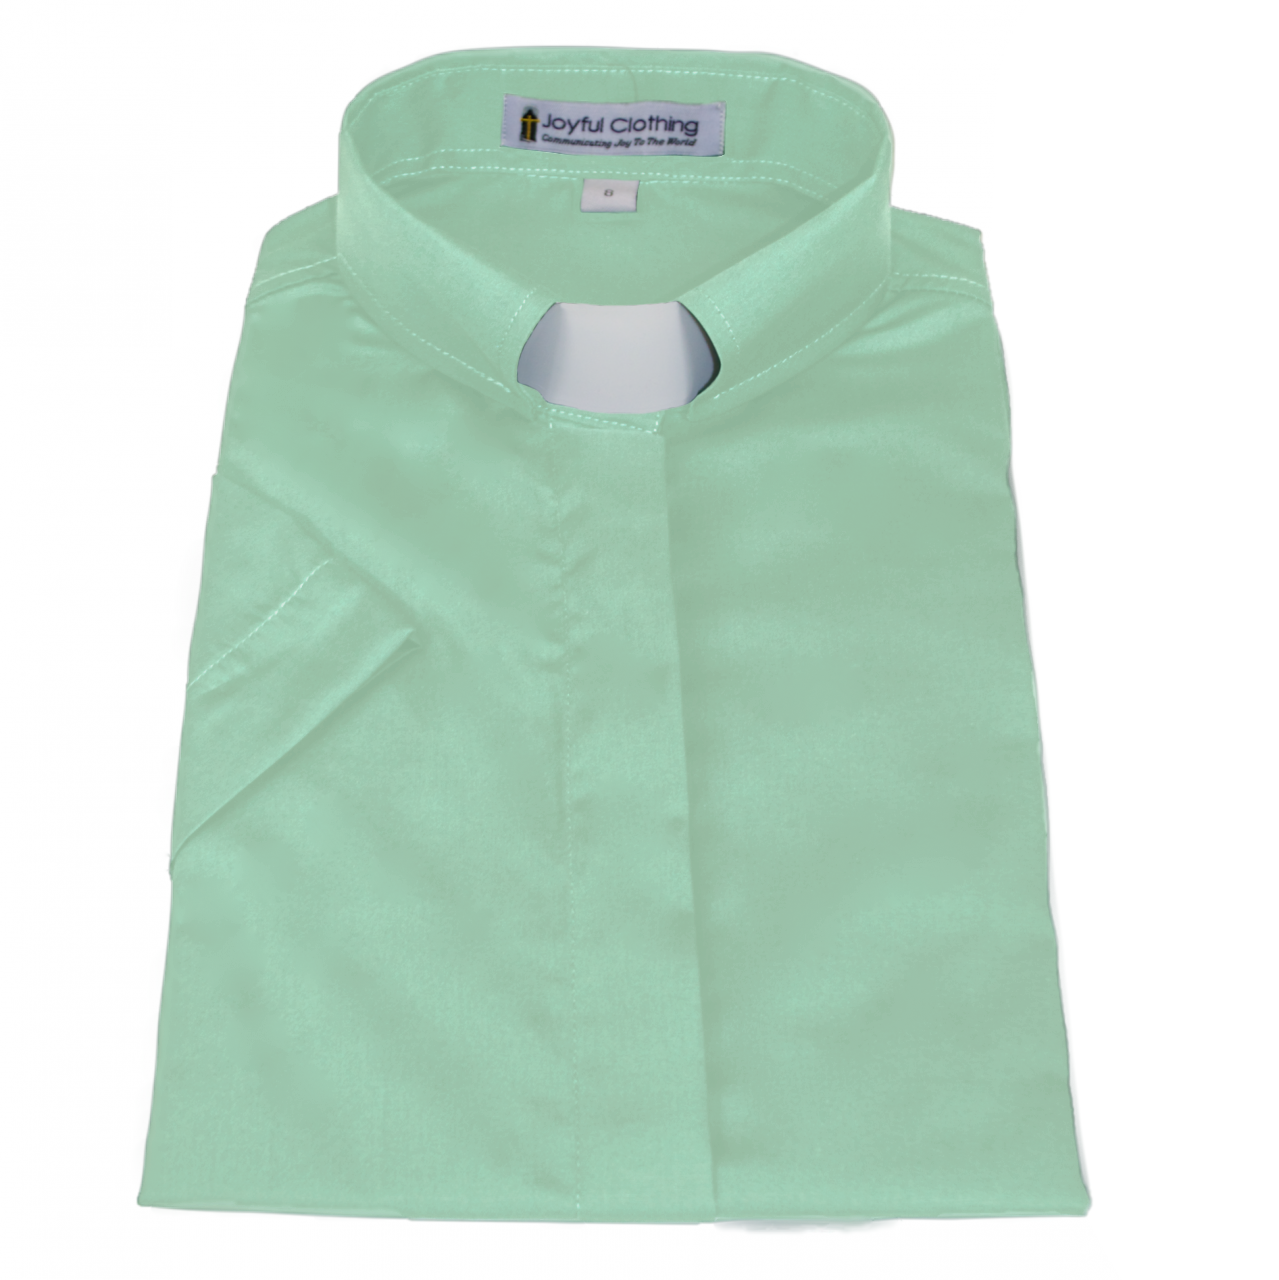 568. Women's Short-Sleeve Tab-Collar Clergy Shirt - Mint Green